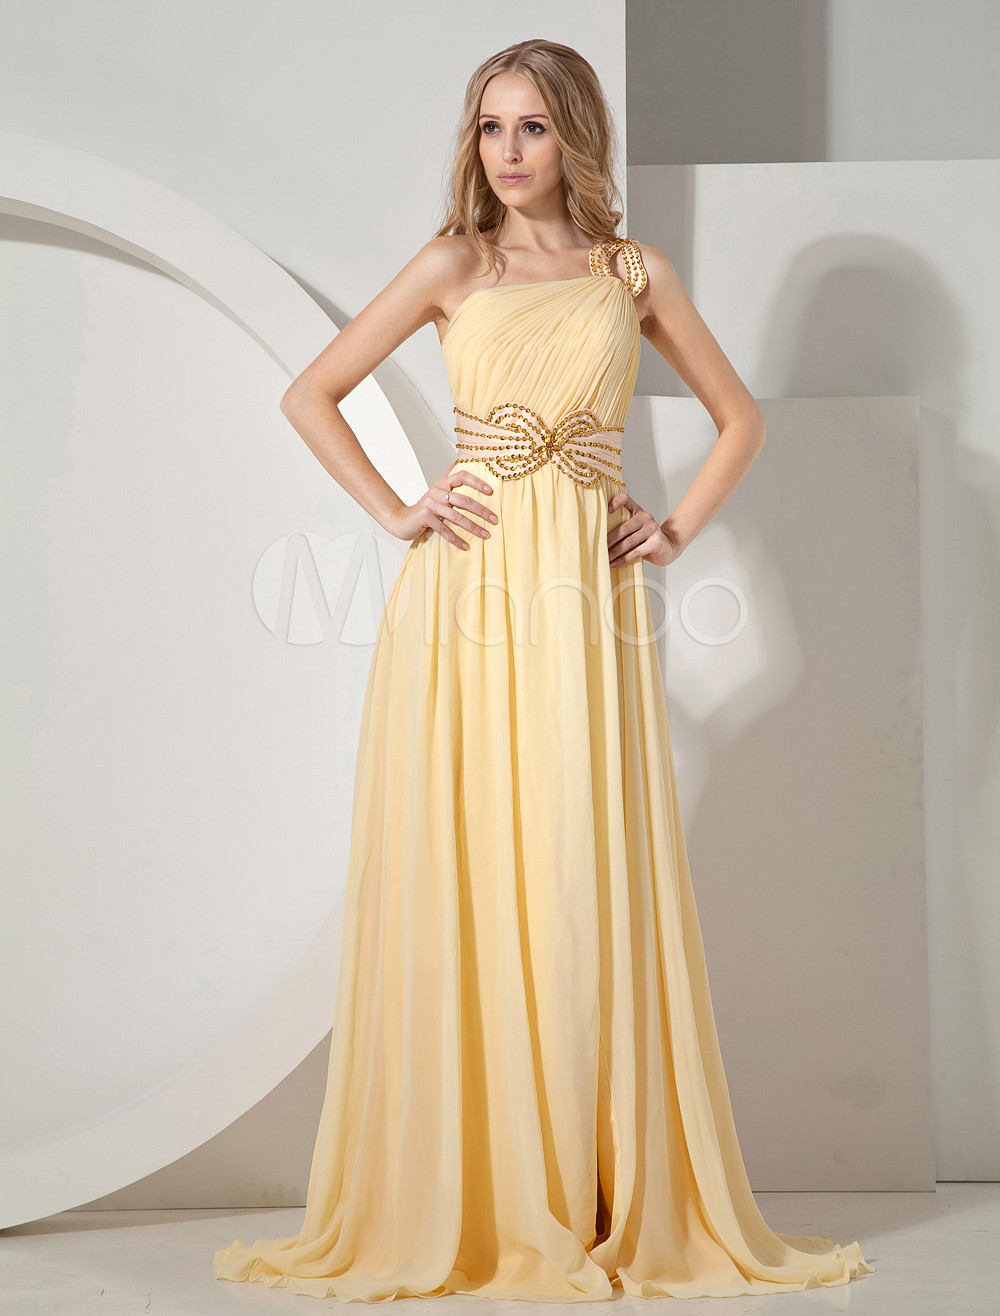 Buy Daffodil Prom Dress Slit A line One Shoulder Chiffon Sash Evening Dress With Sweep Train for $149.99 in Milanoo store